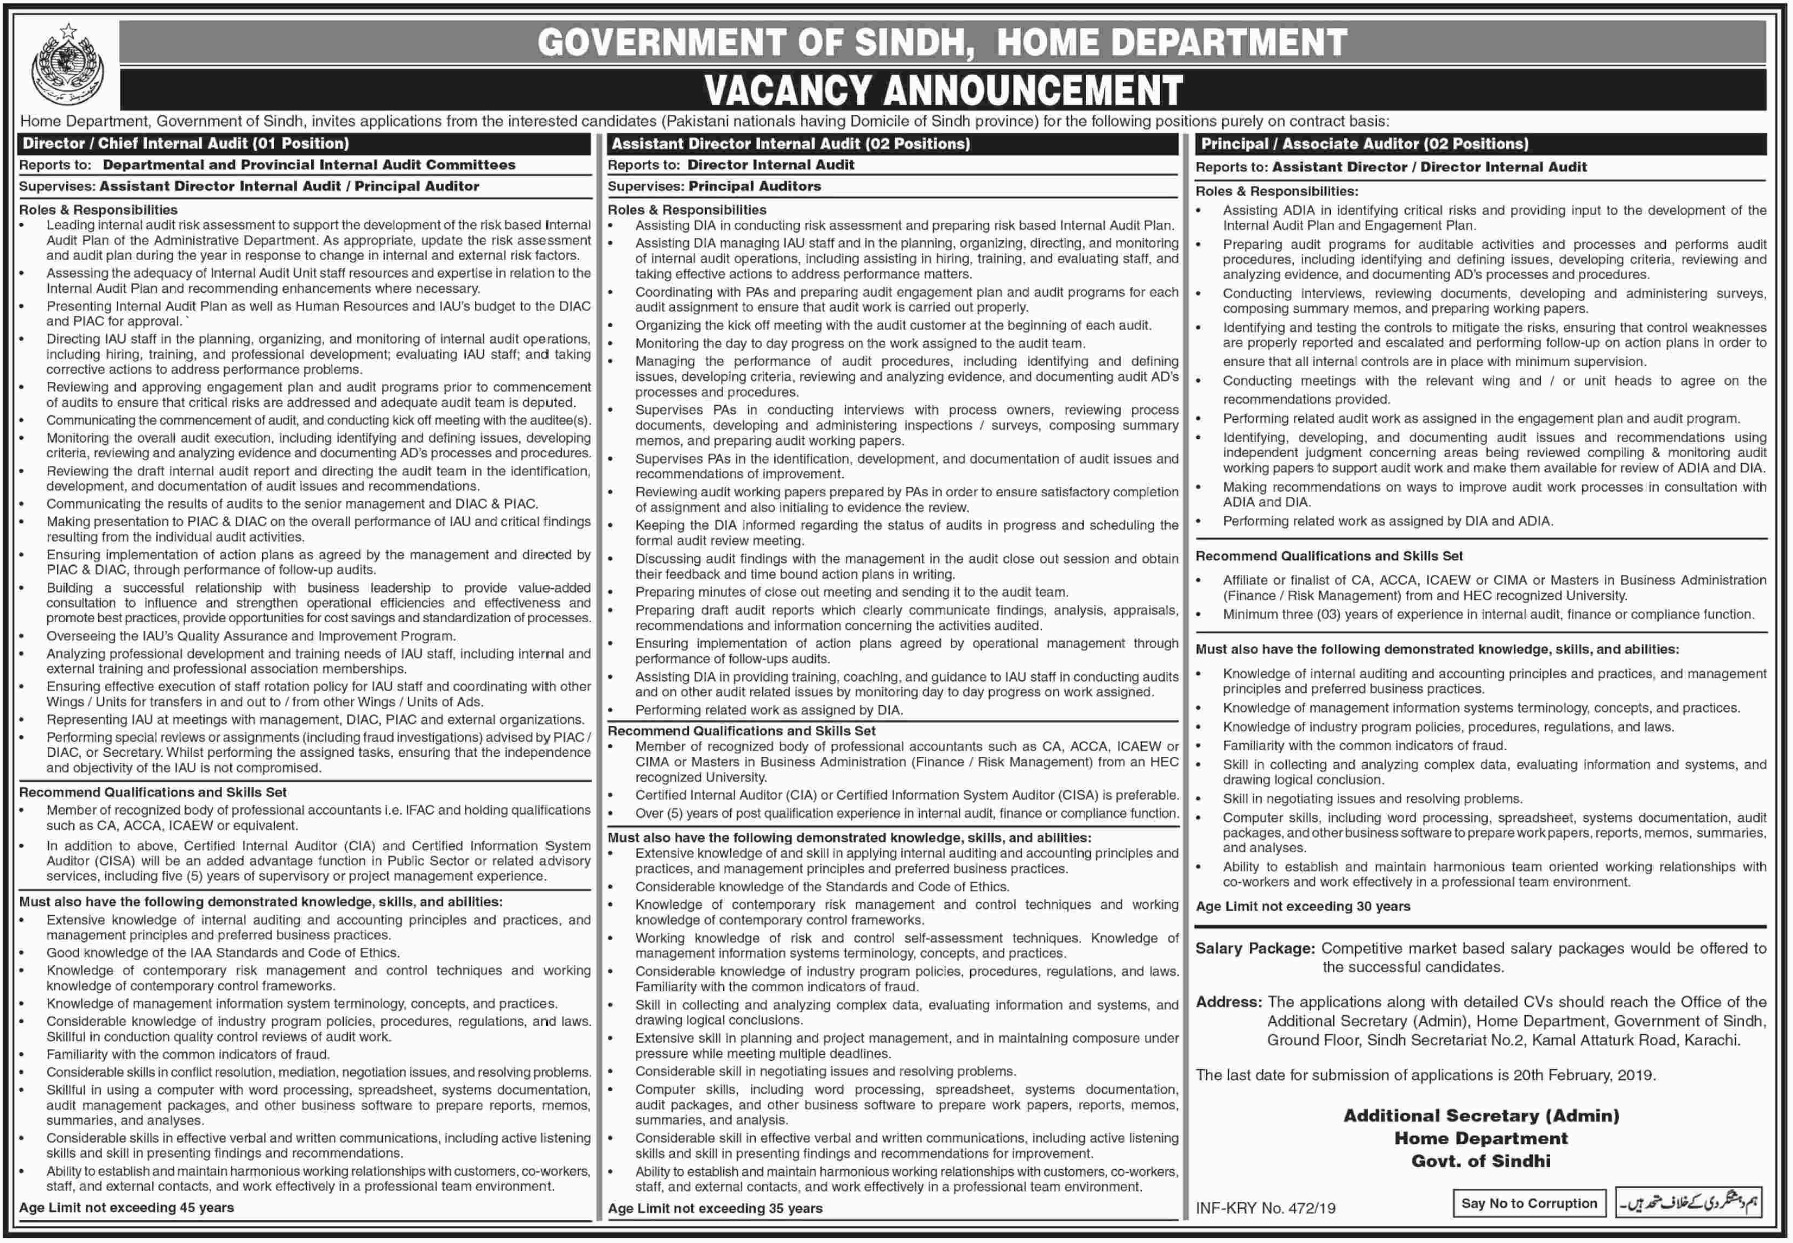 Home Department Jobs 2019 Government of Sindh Latest